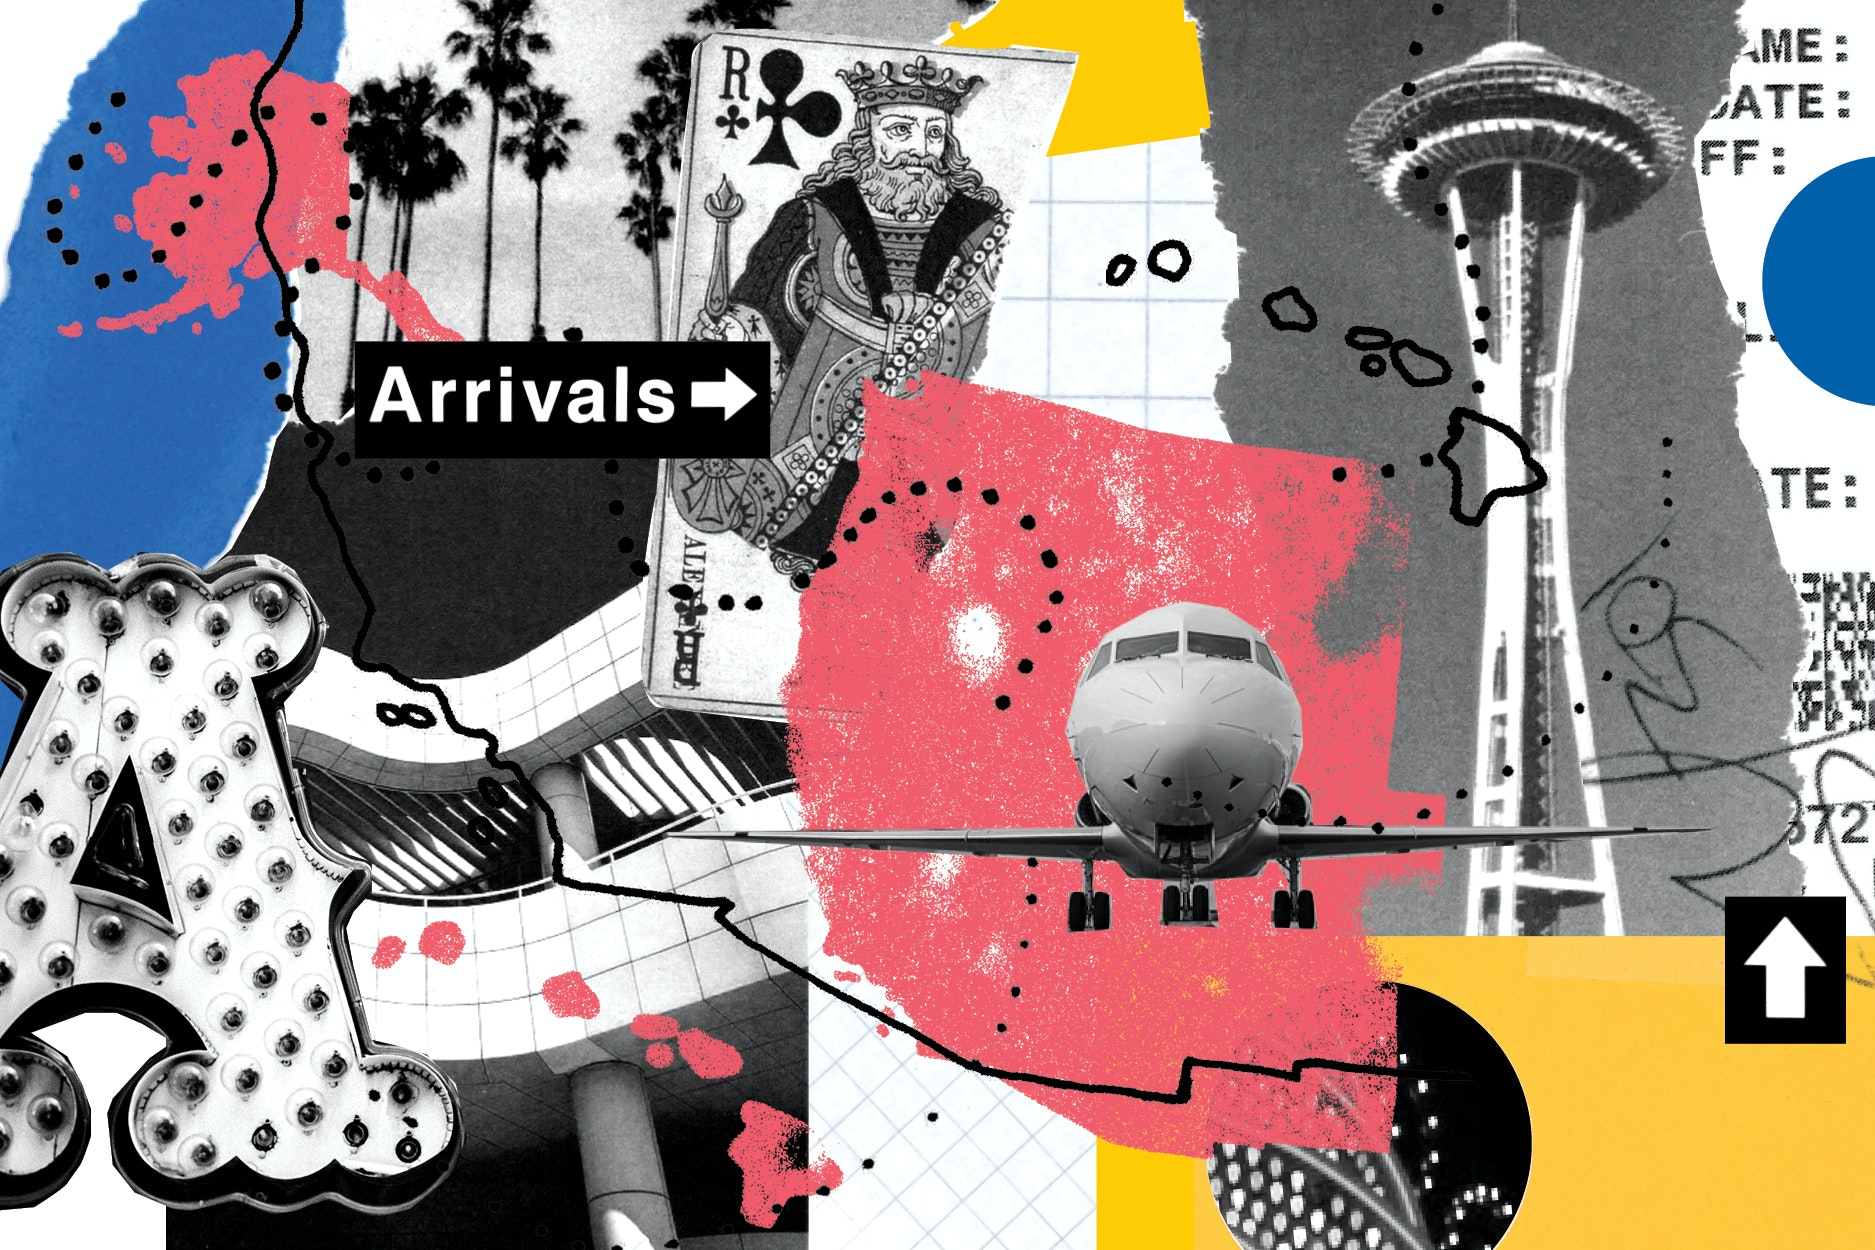 Seattle, Las Vegas, Denver, and Los Angeles are all popular destinations with West Coast travelers.